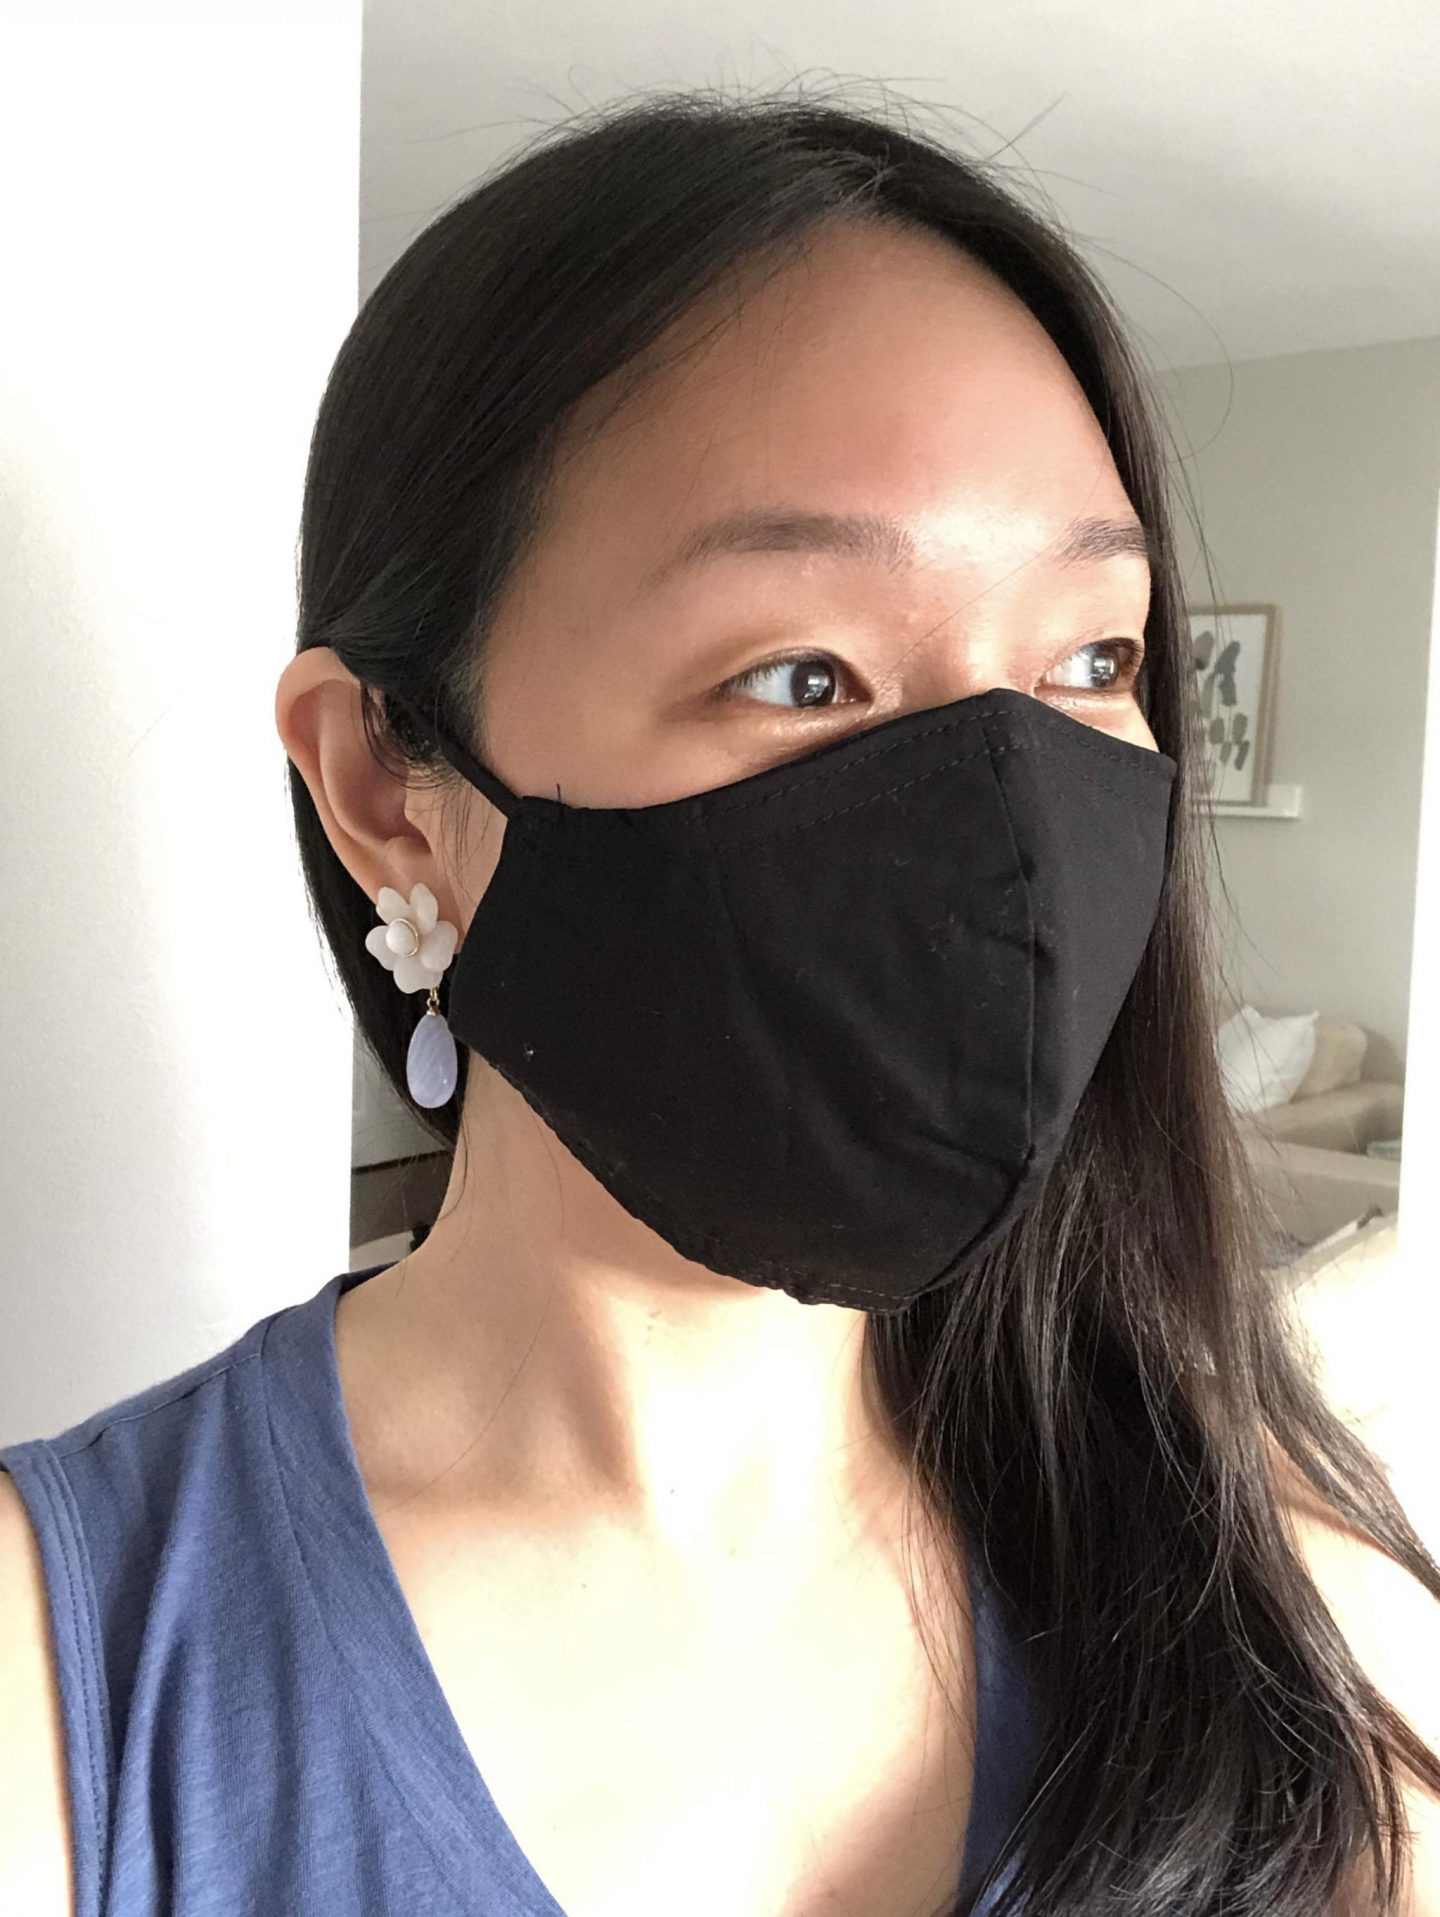 Target Adult Face Mask, size S/M